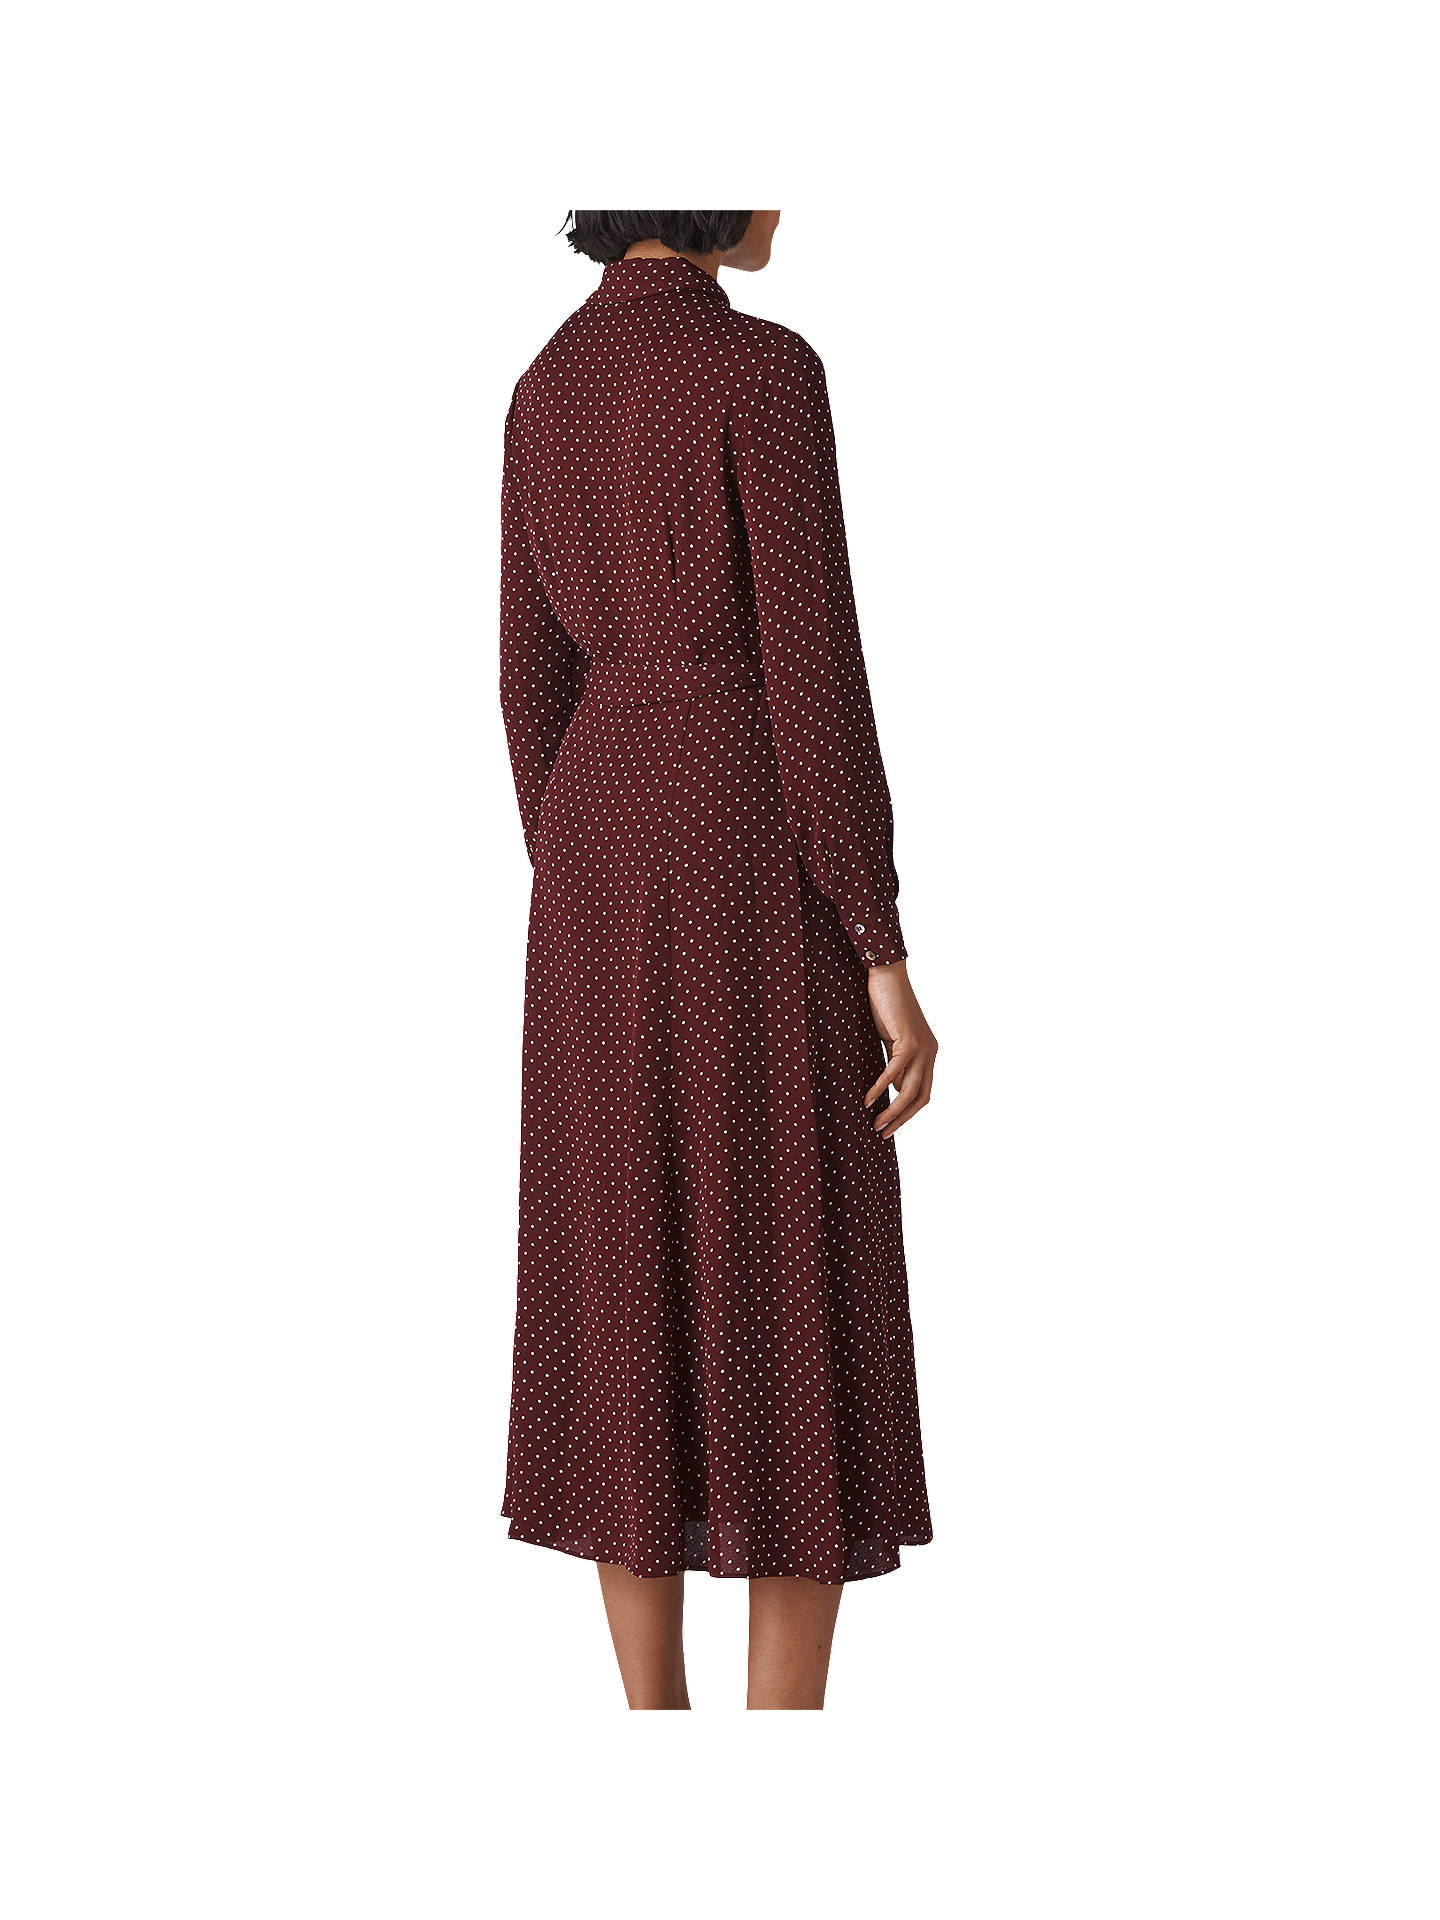 Buy Whistles Margot Spot Shirt Dress, Burgundy, 6 Online at johnlewis.com